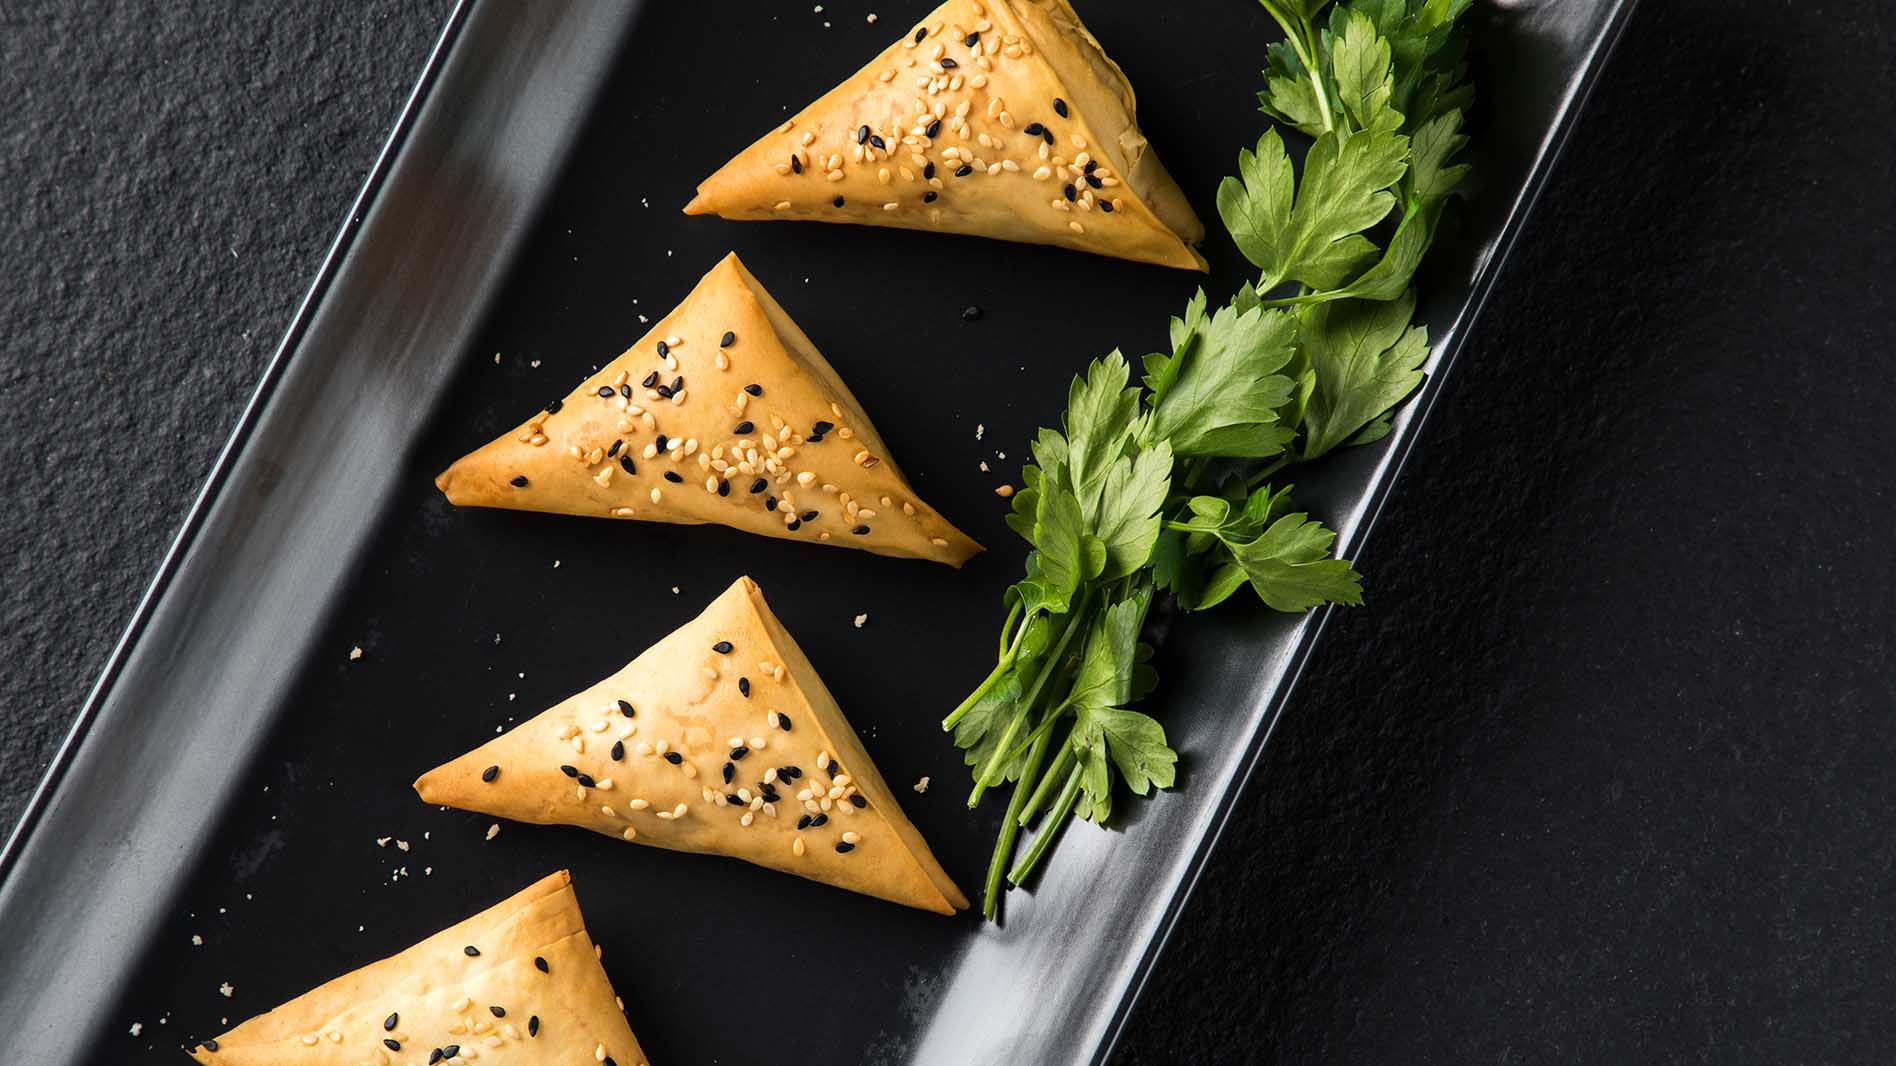 Spinach and Cream Cheese Triangles